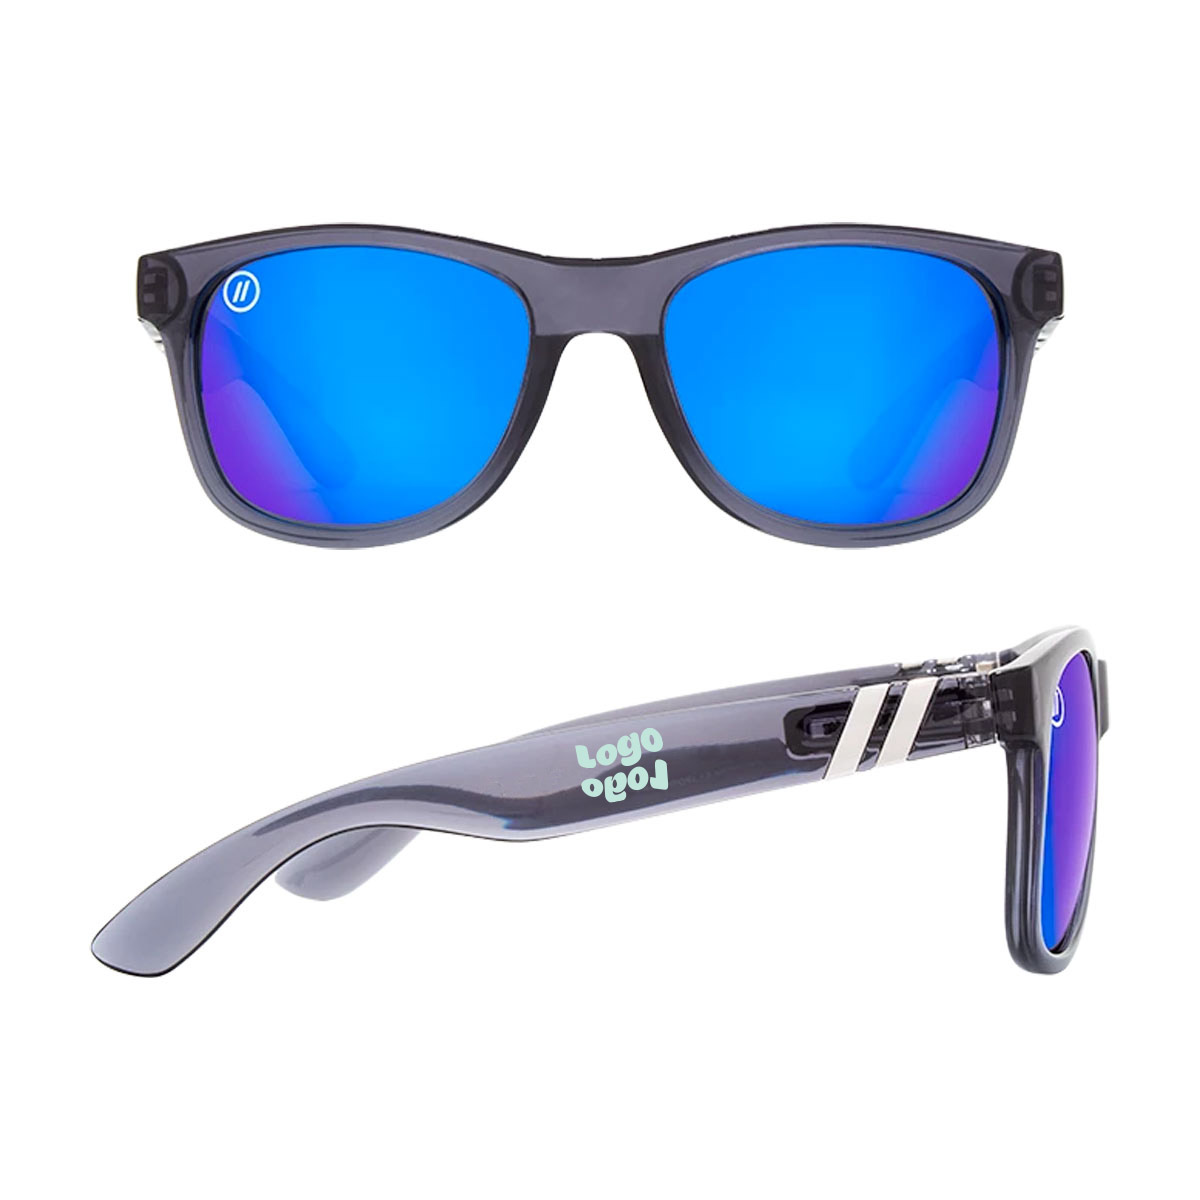 267962 m class x2 sunglasses two color imprint one side